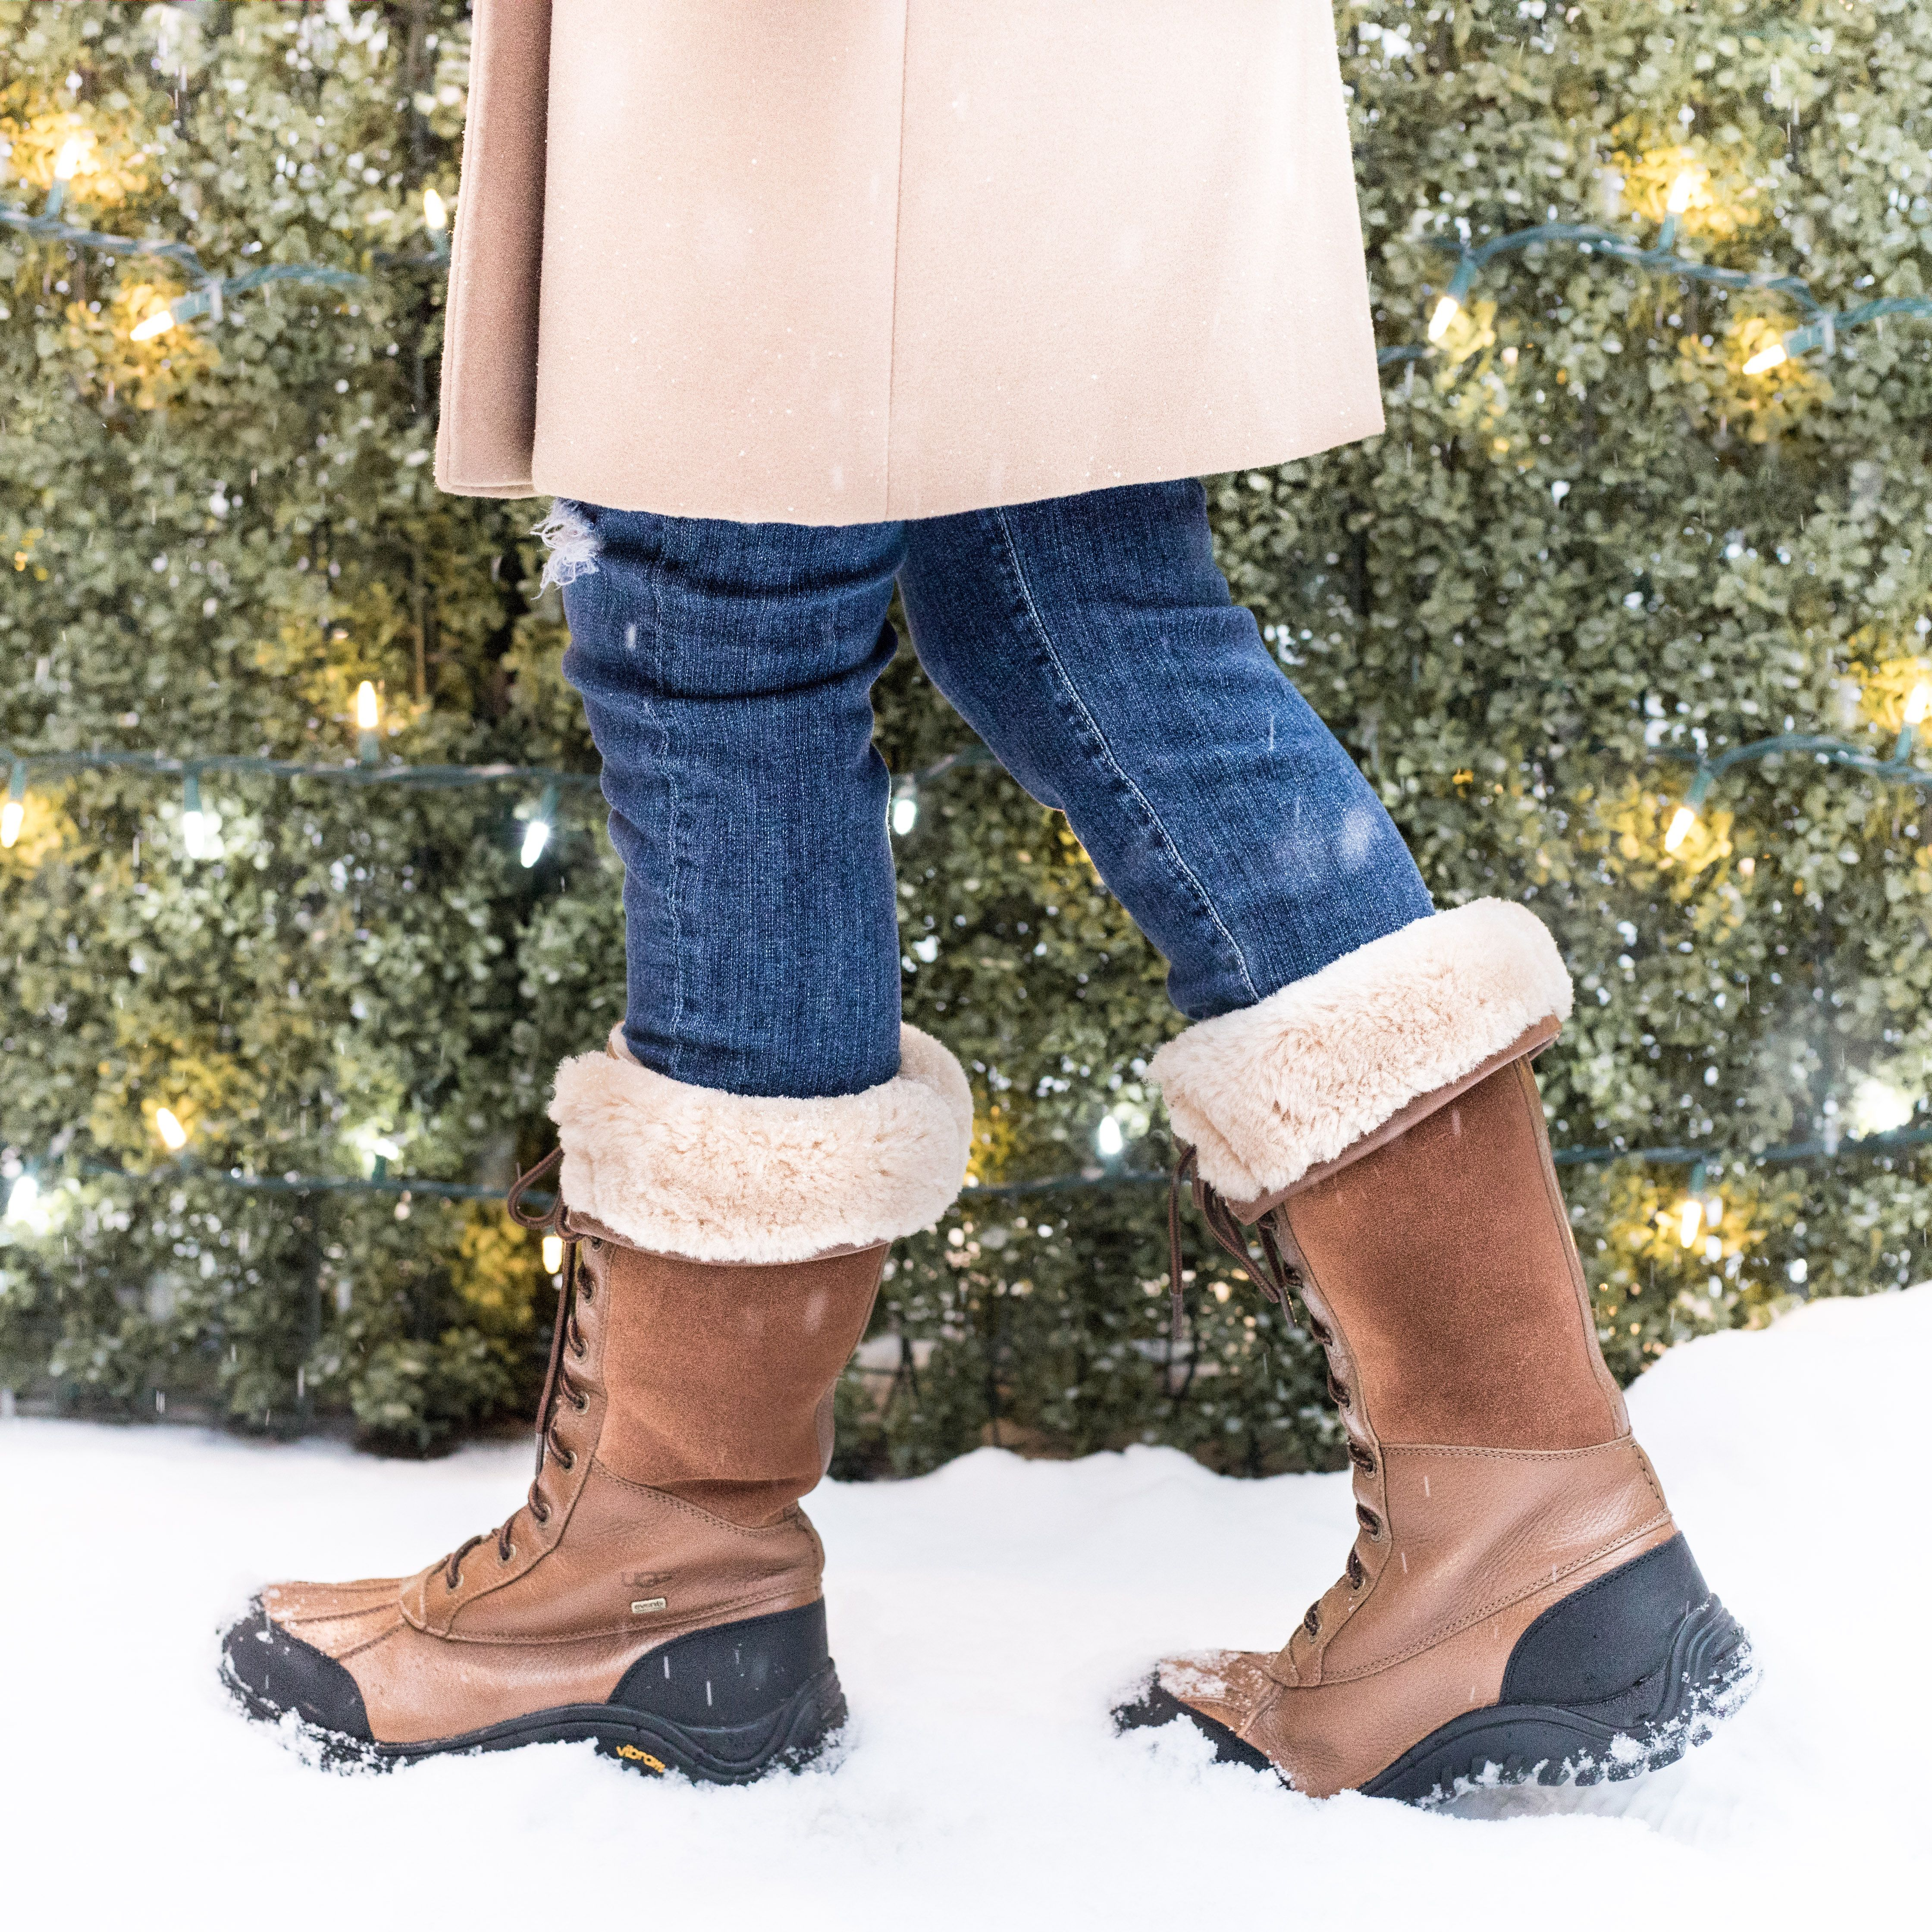 camel coat, uggs and blue jeans - winter fashion ideas